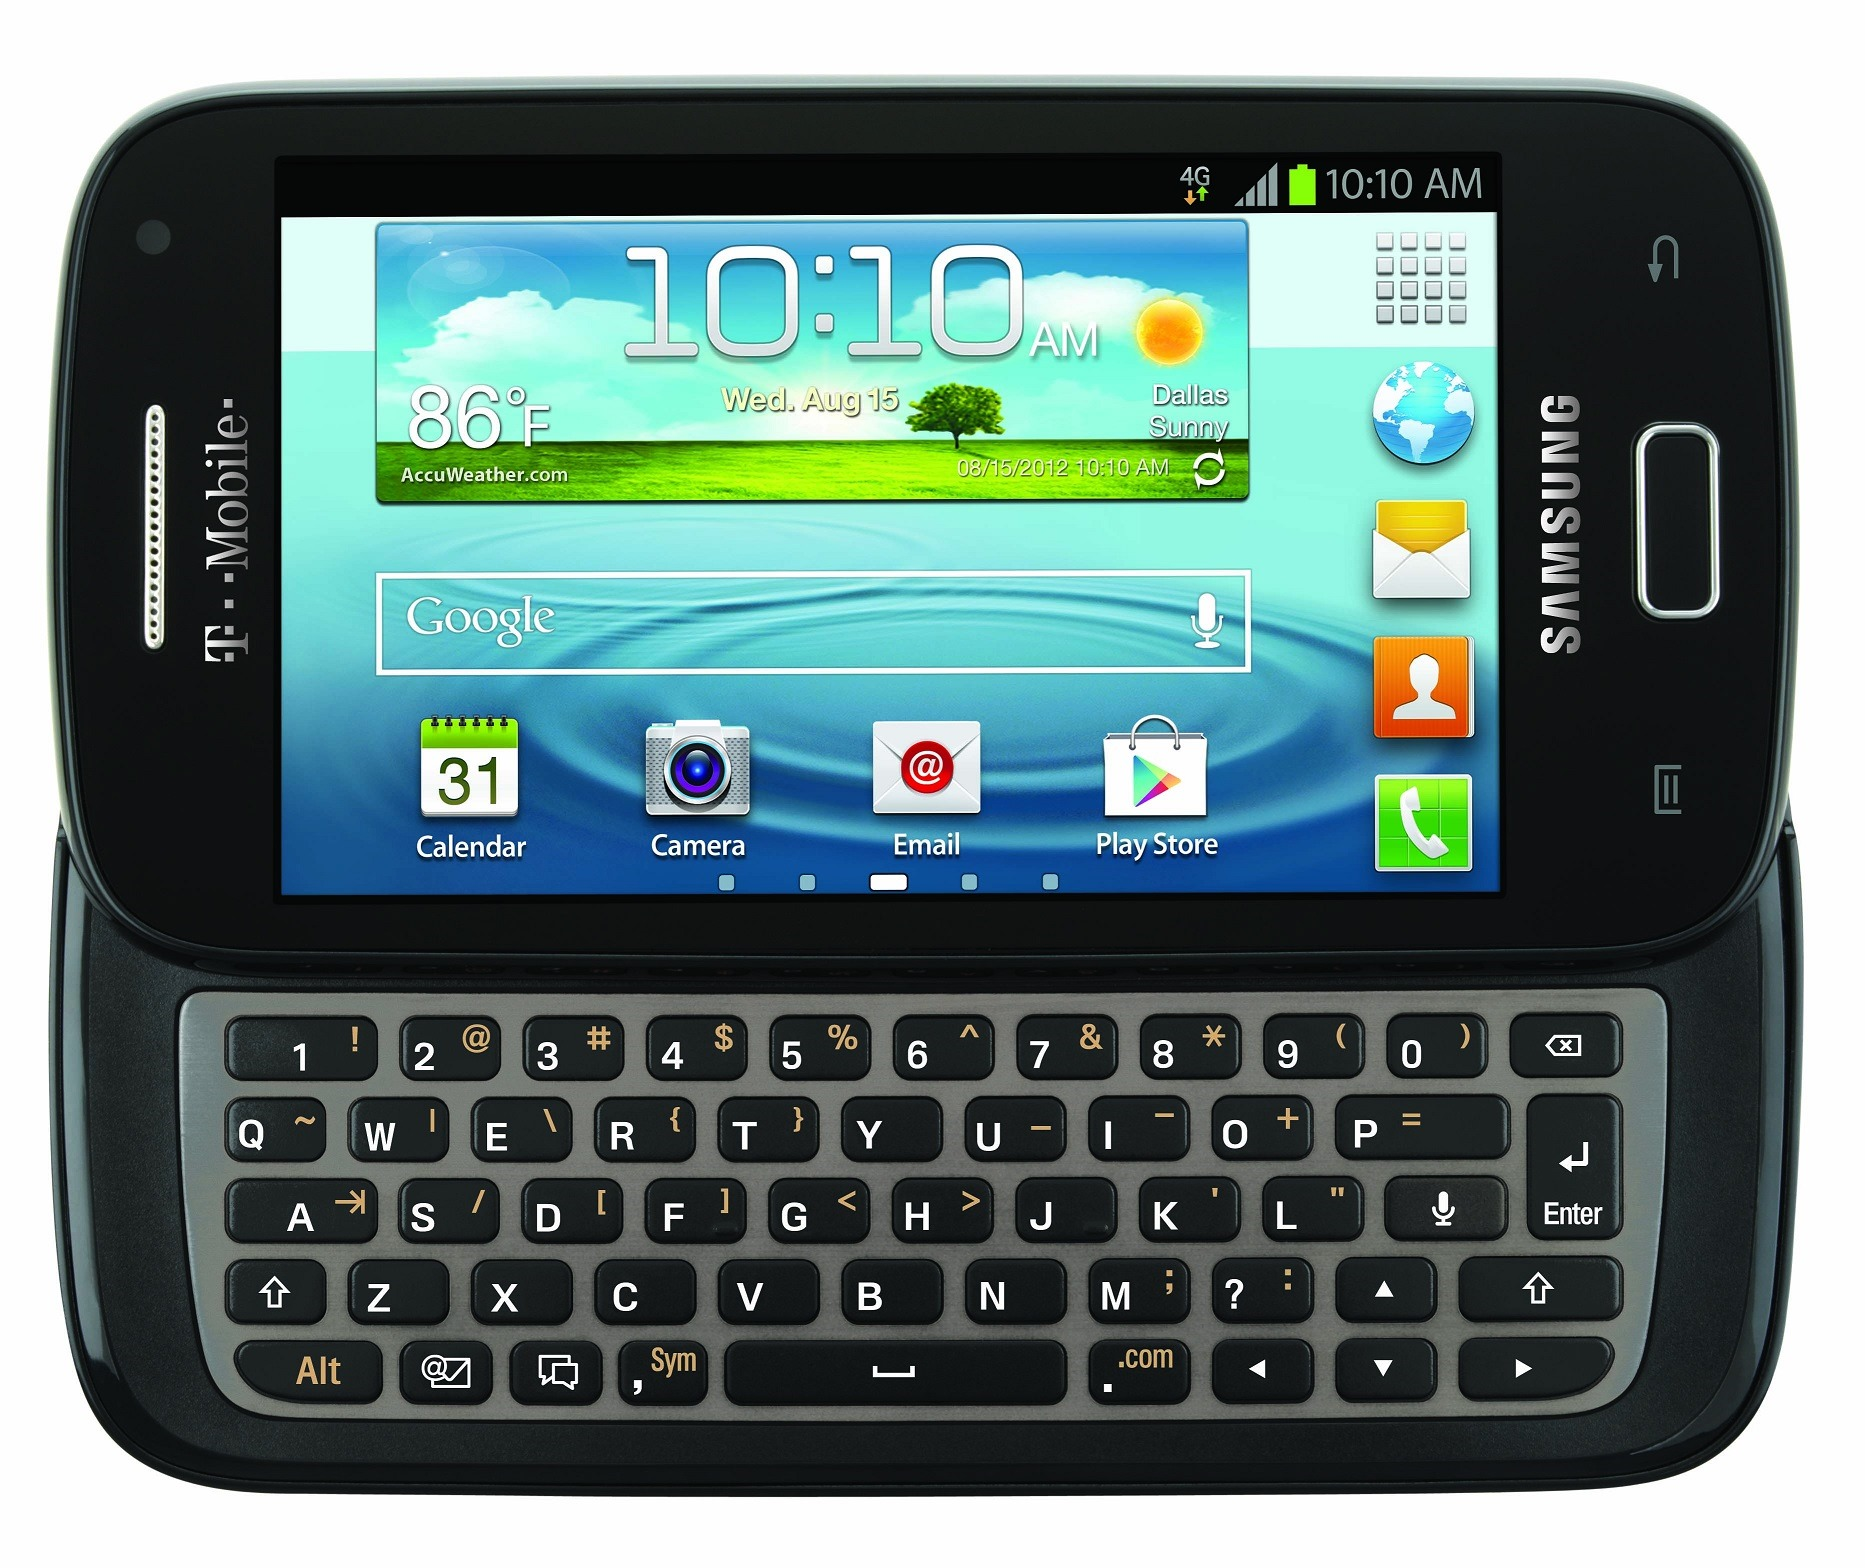 Phone S On The Mobile Samsung Galaxy S Relay 4g Full Specifications And Price